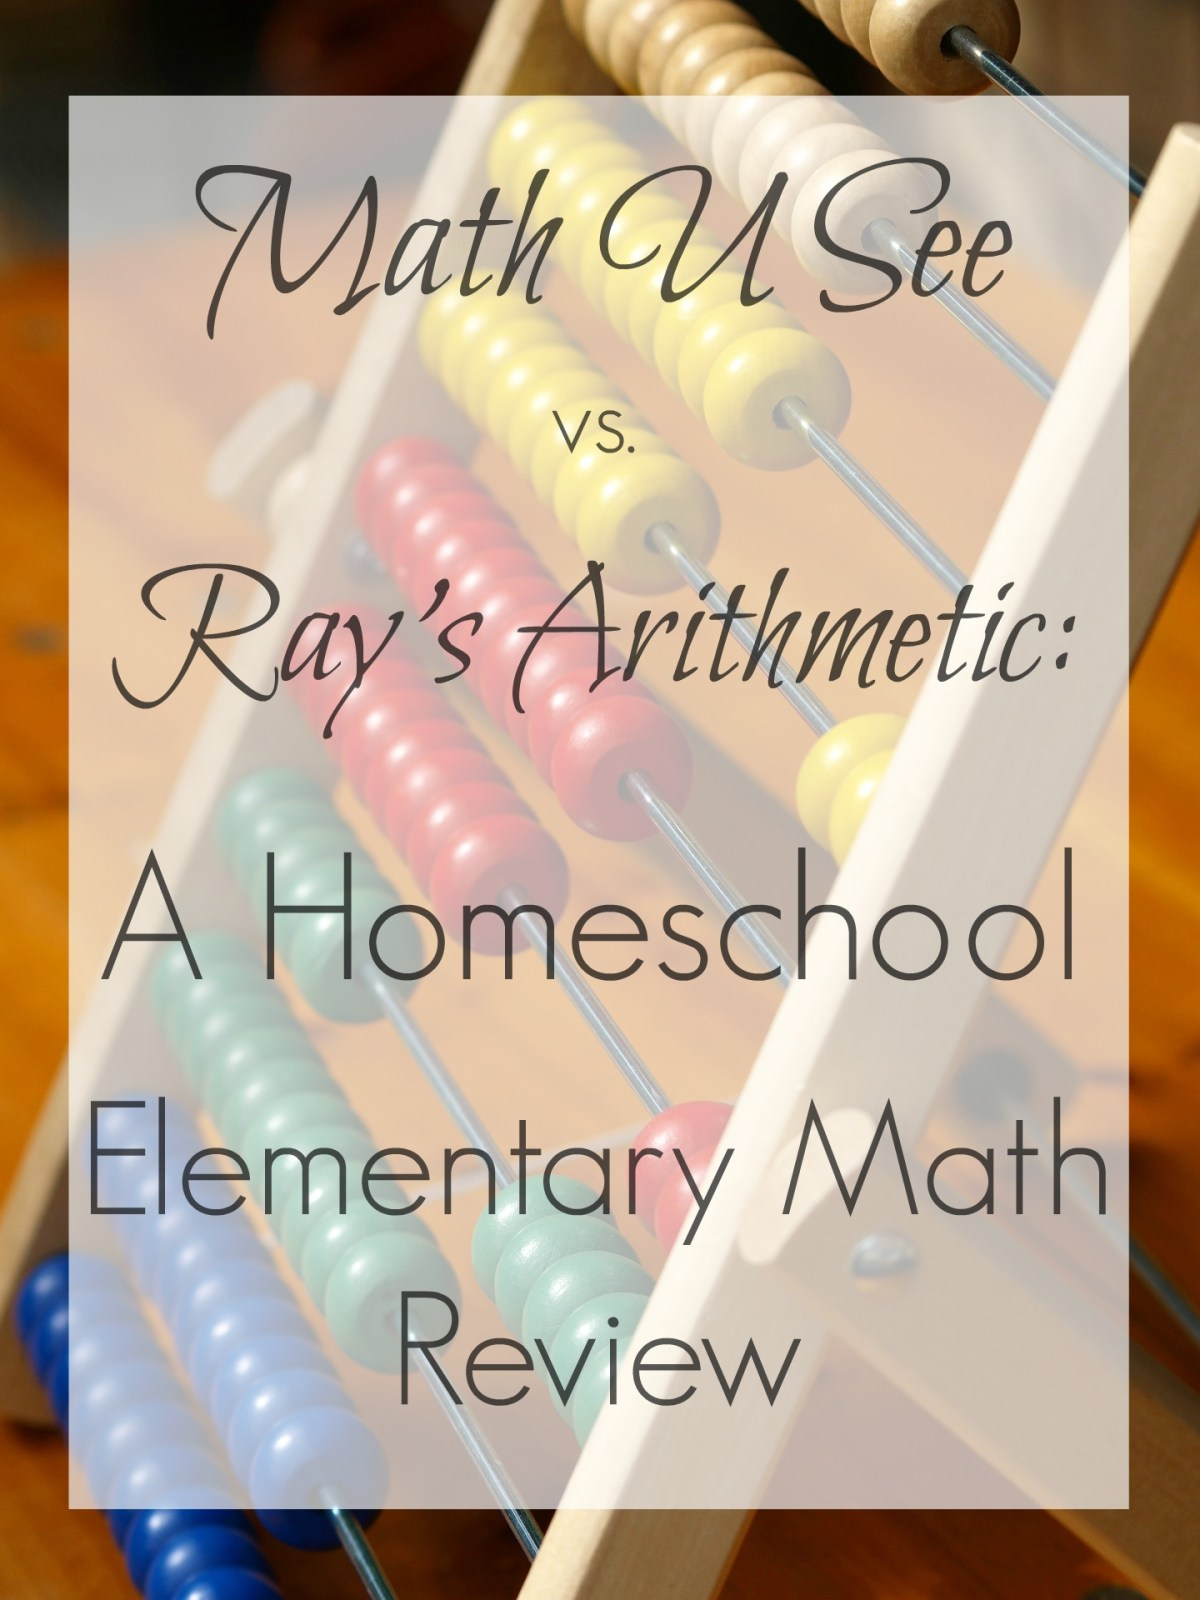 Math U See vs. Ray's Arithmetic: A review after 13 years of homeschooling.